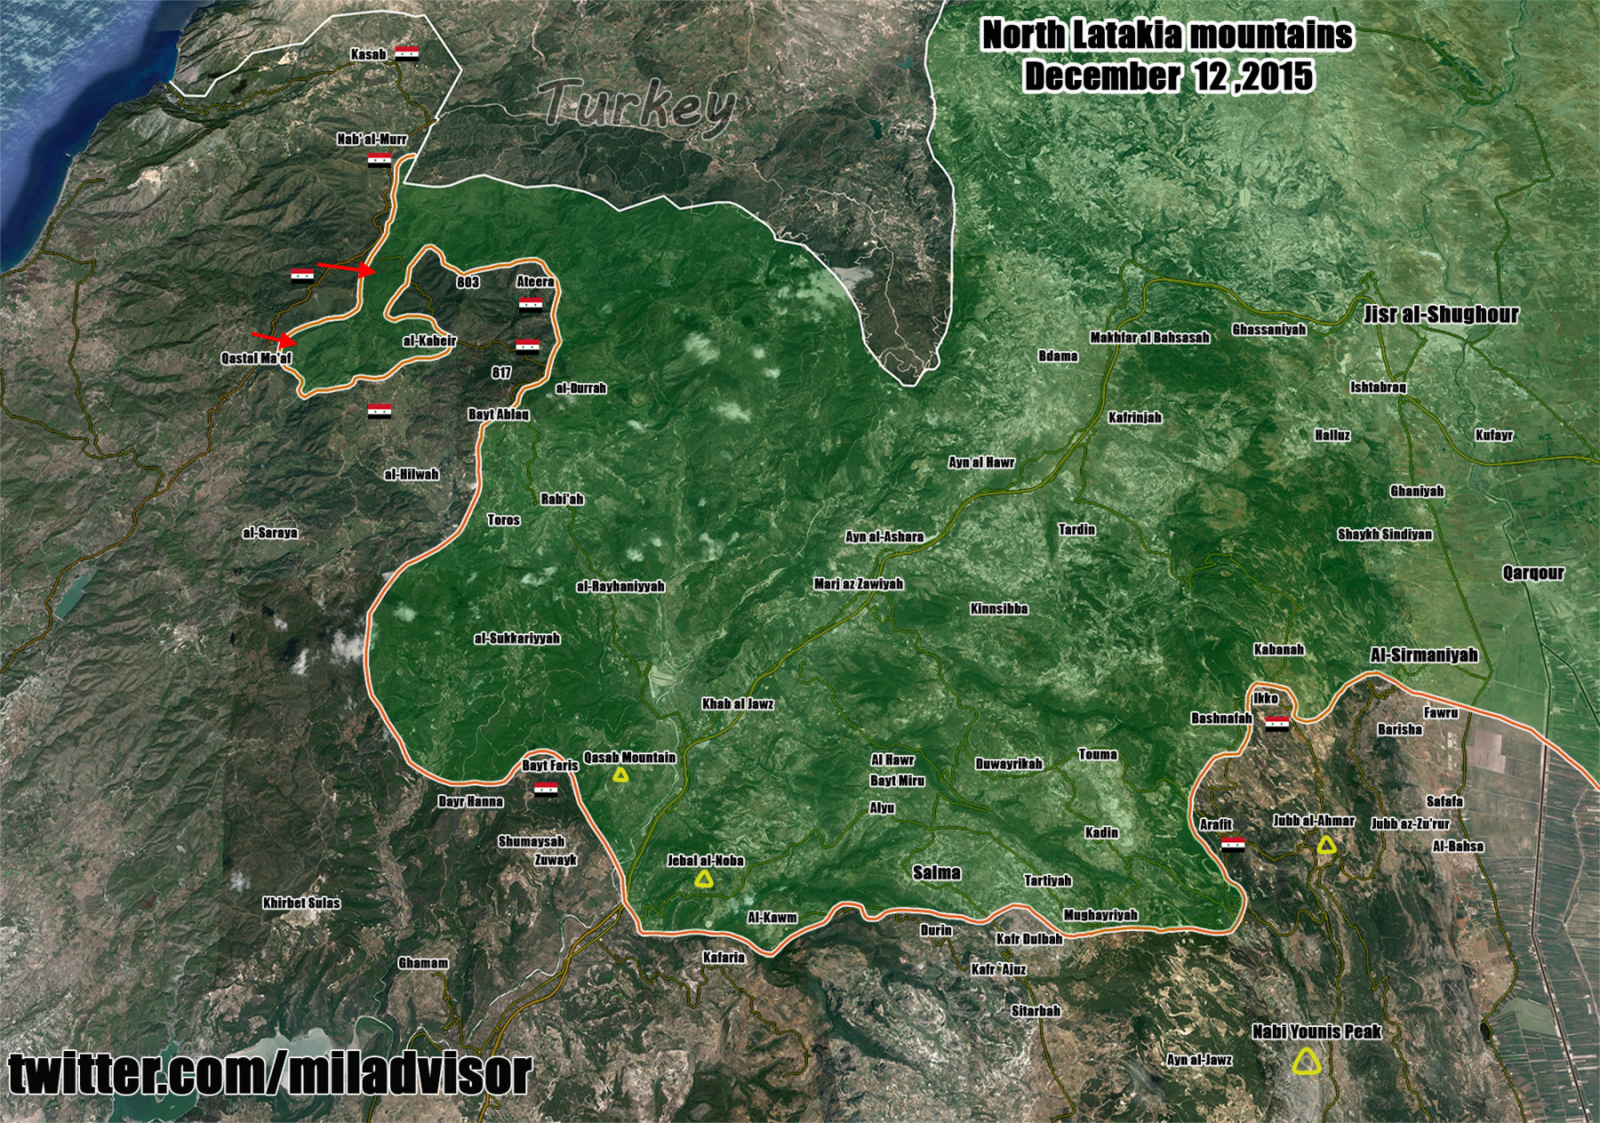 Syrian Civil War: News #5 Latakia12122015